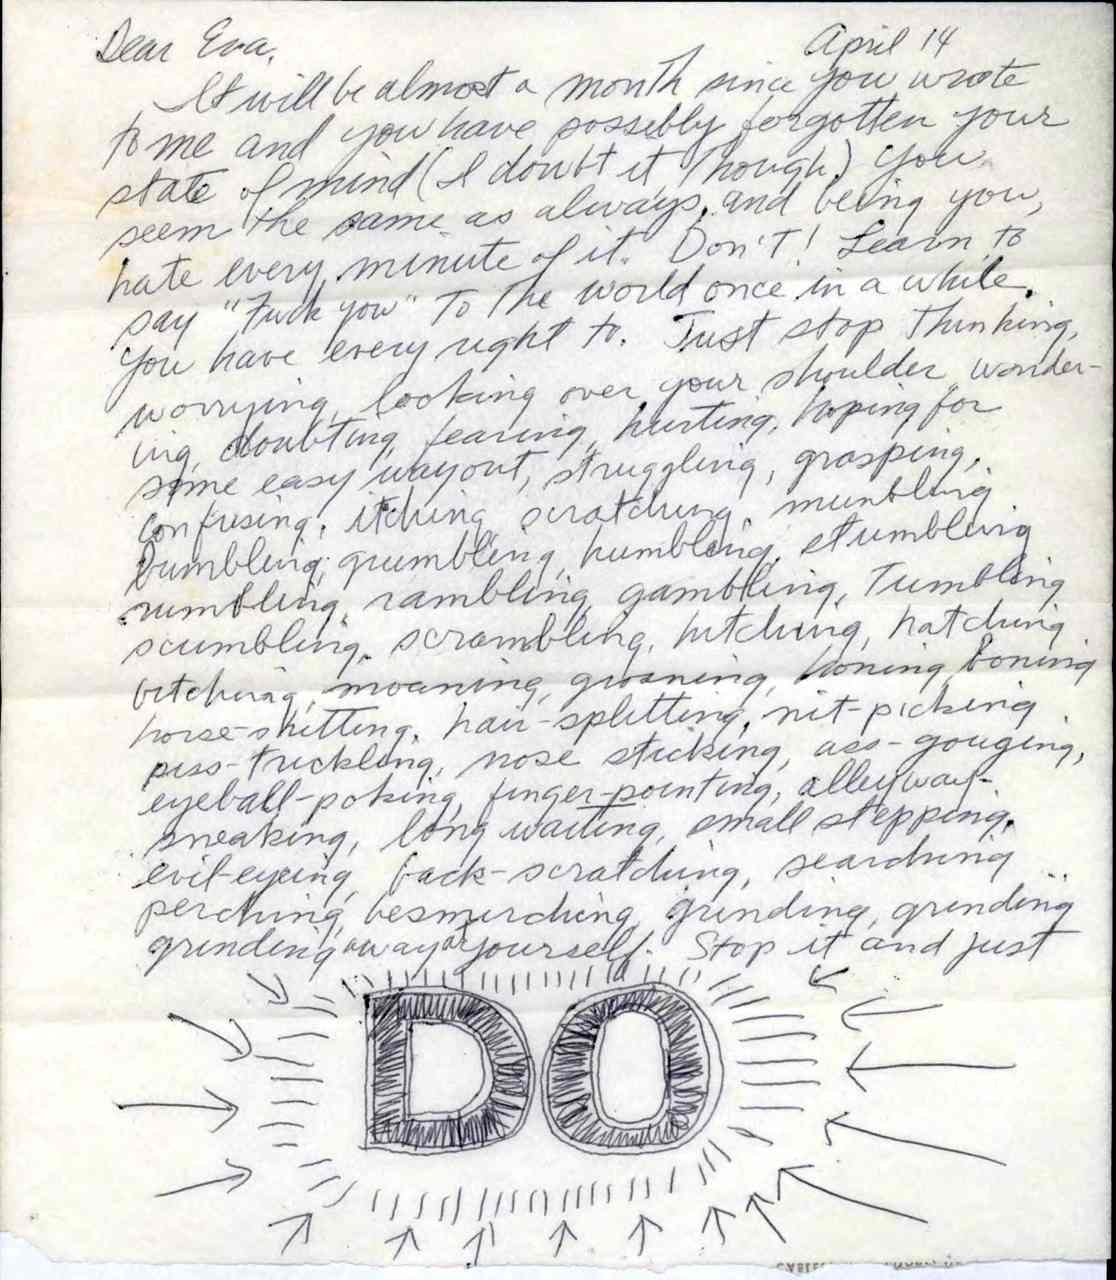 Sol LeWitt's Advice to Eva Hesse: Don't Worry About Cool, Make